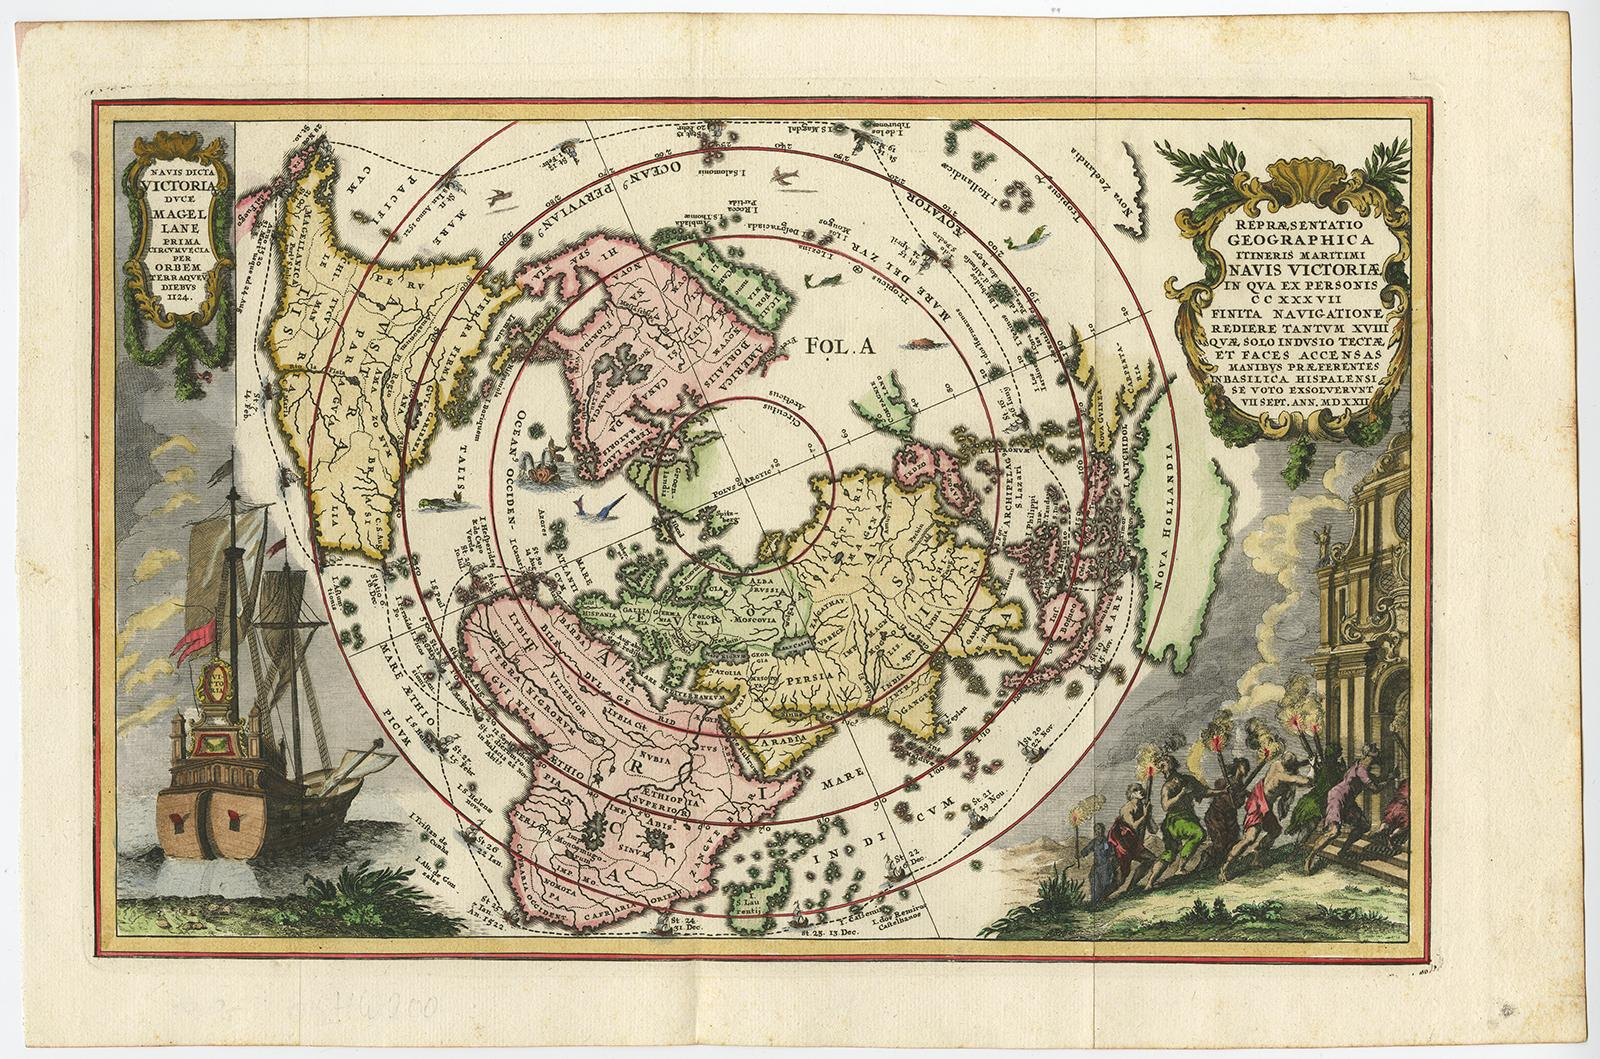 Antique Print-WORLD MAP-MAGELLAN-VICTORIA-SHIP-Scherer-c. 1700 ...